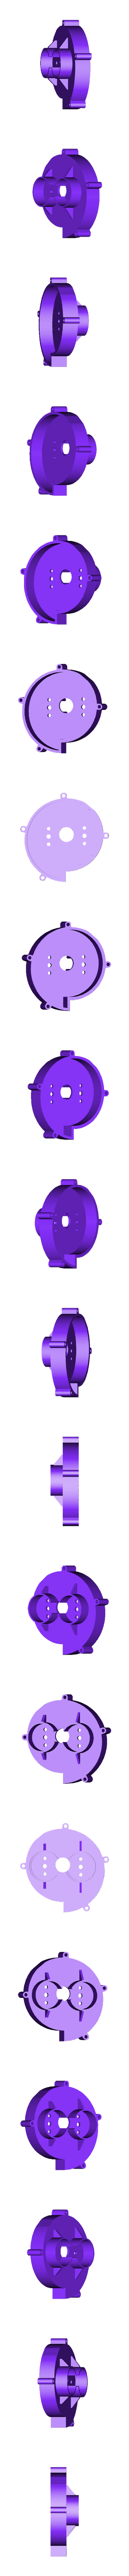 Body2.stl Download free STL file Dual motor water pump • Model to 3D print, LetsPrintYT